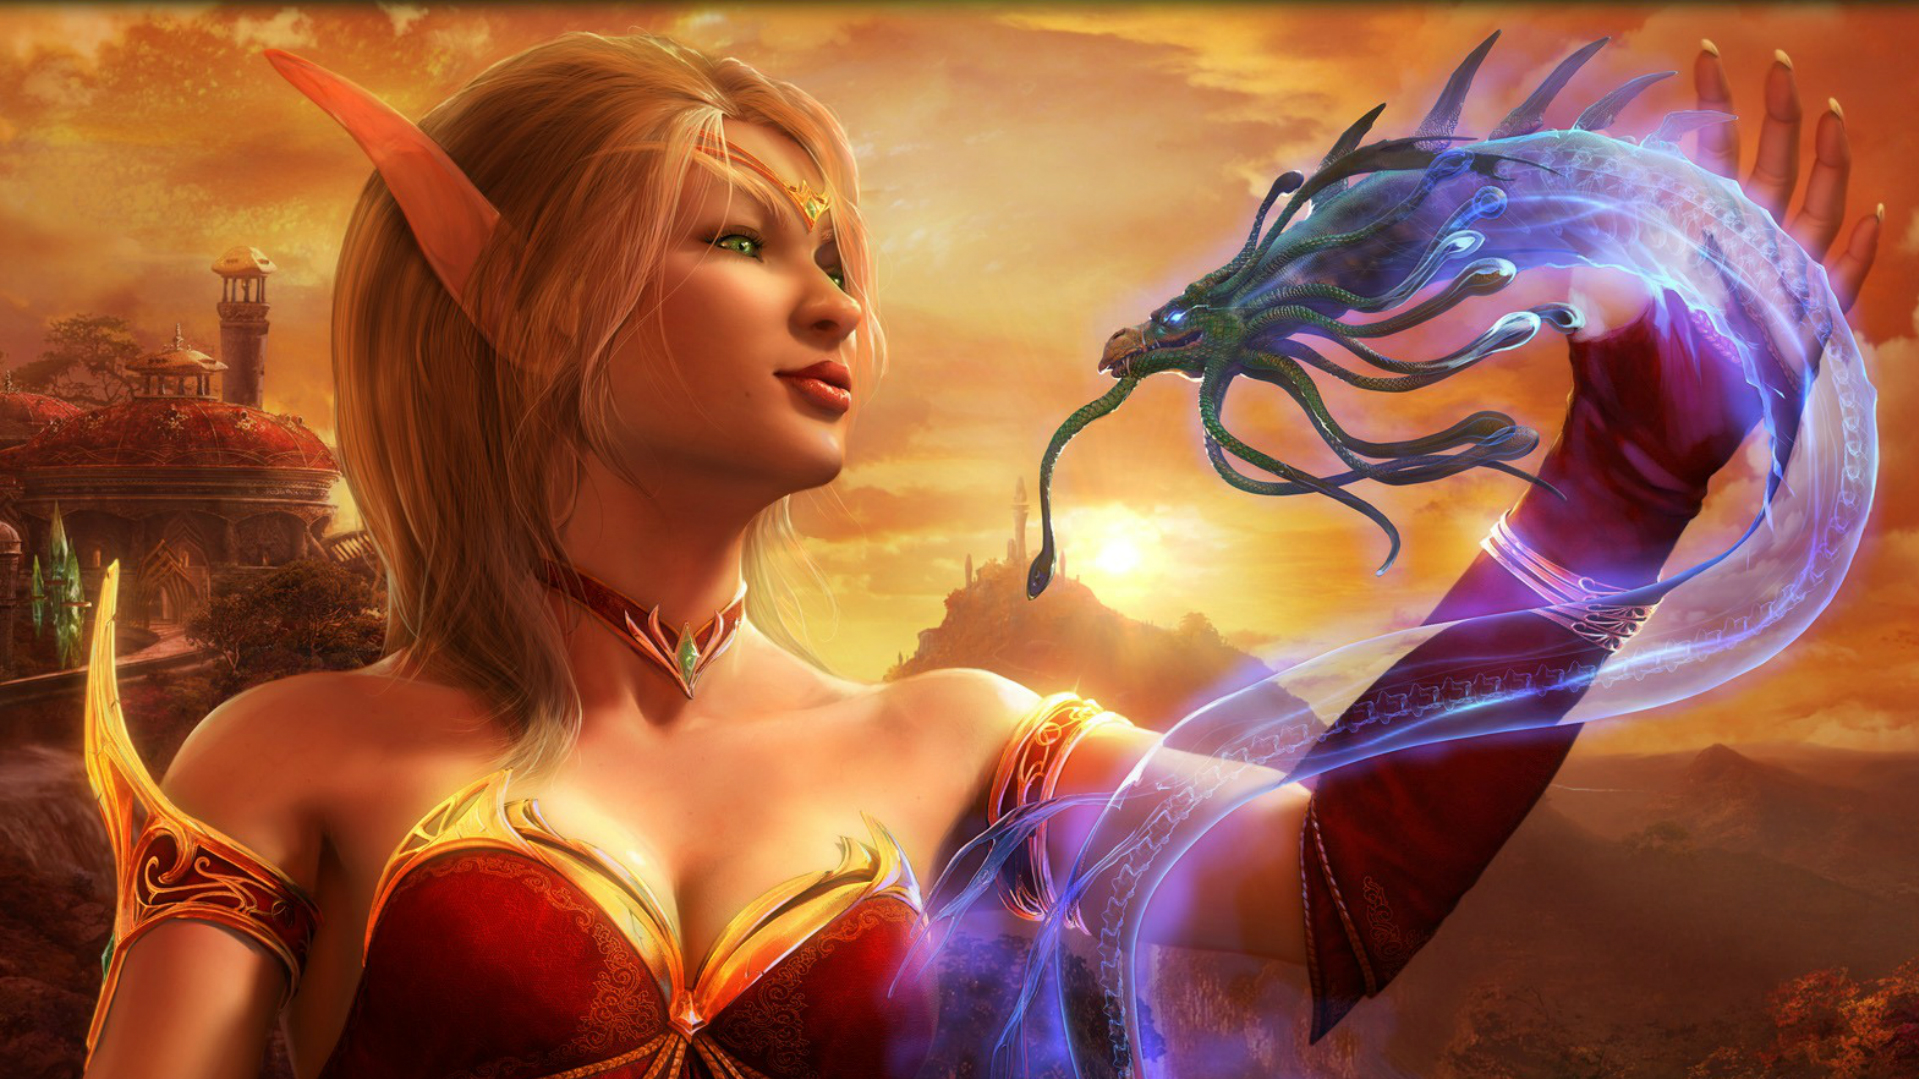 Blood elf cinematic wallpaper adult picture